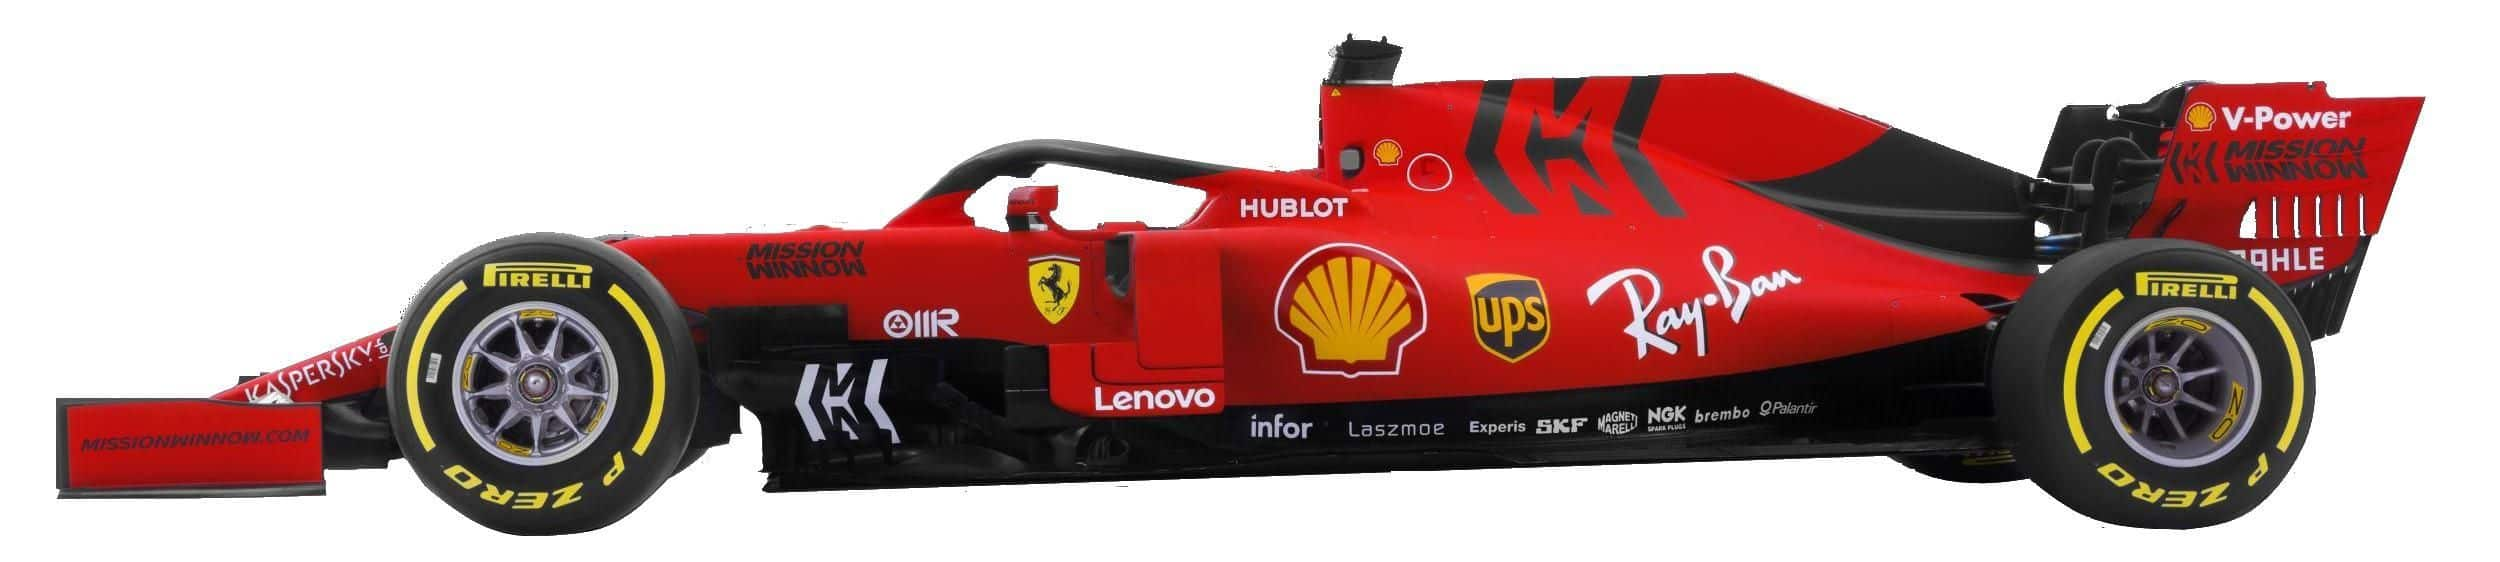 2019 Ferrari SF90 studio photo left side no background Photo Ferrari Edited by MAXF1net